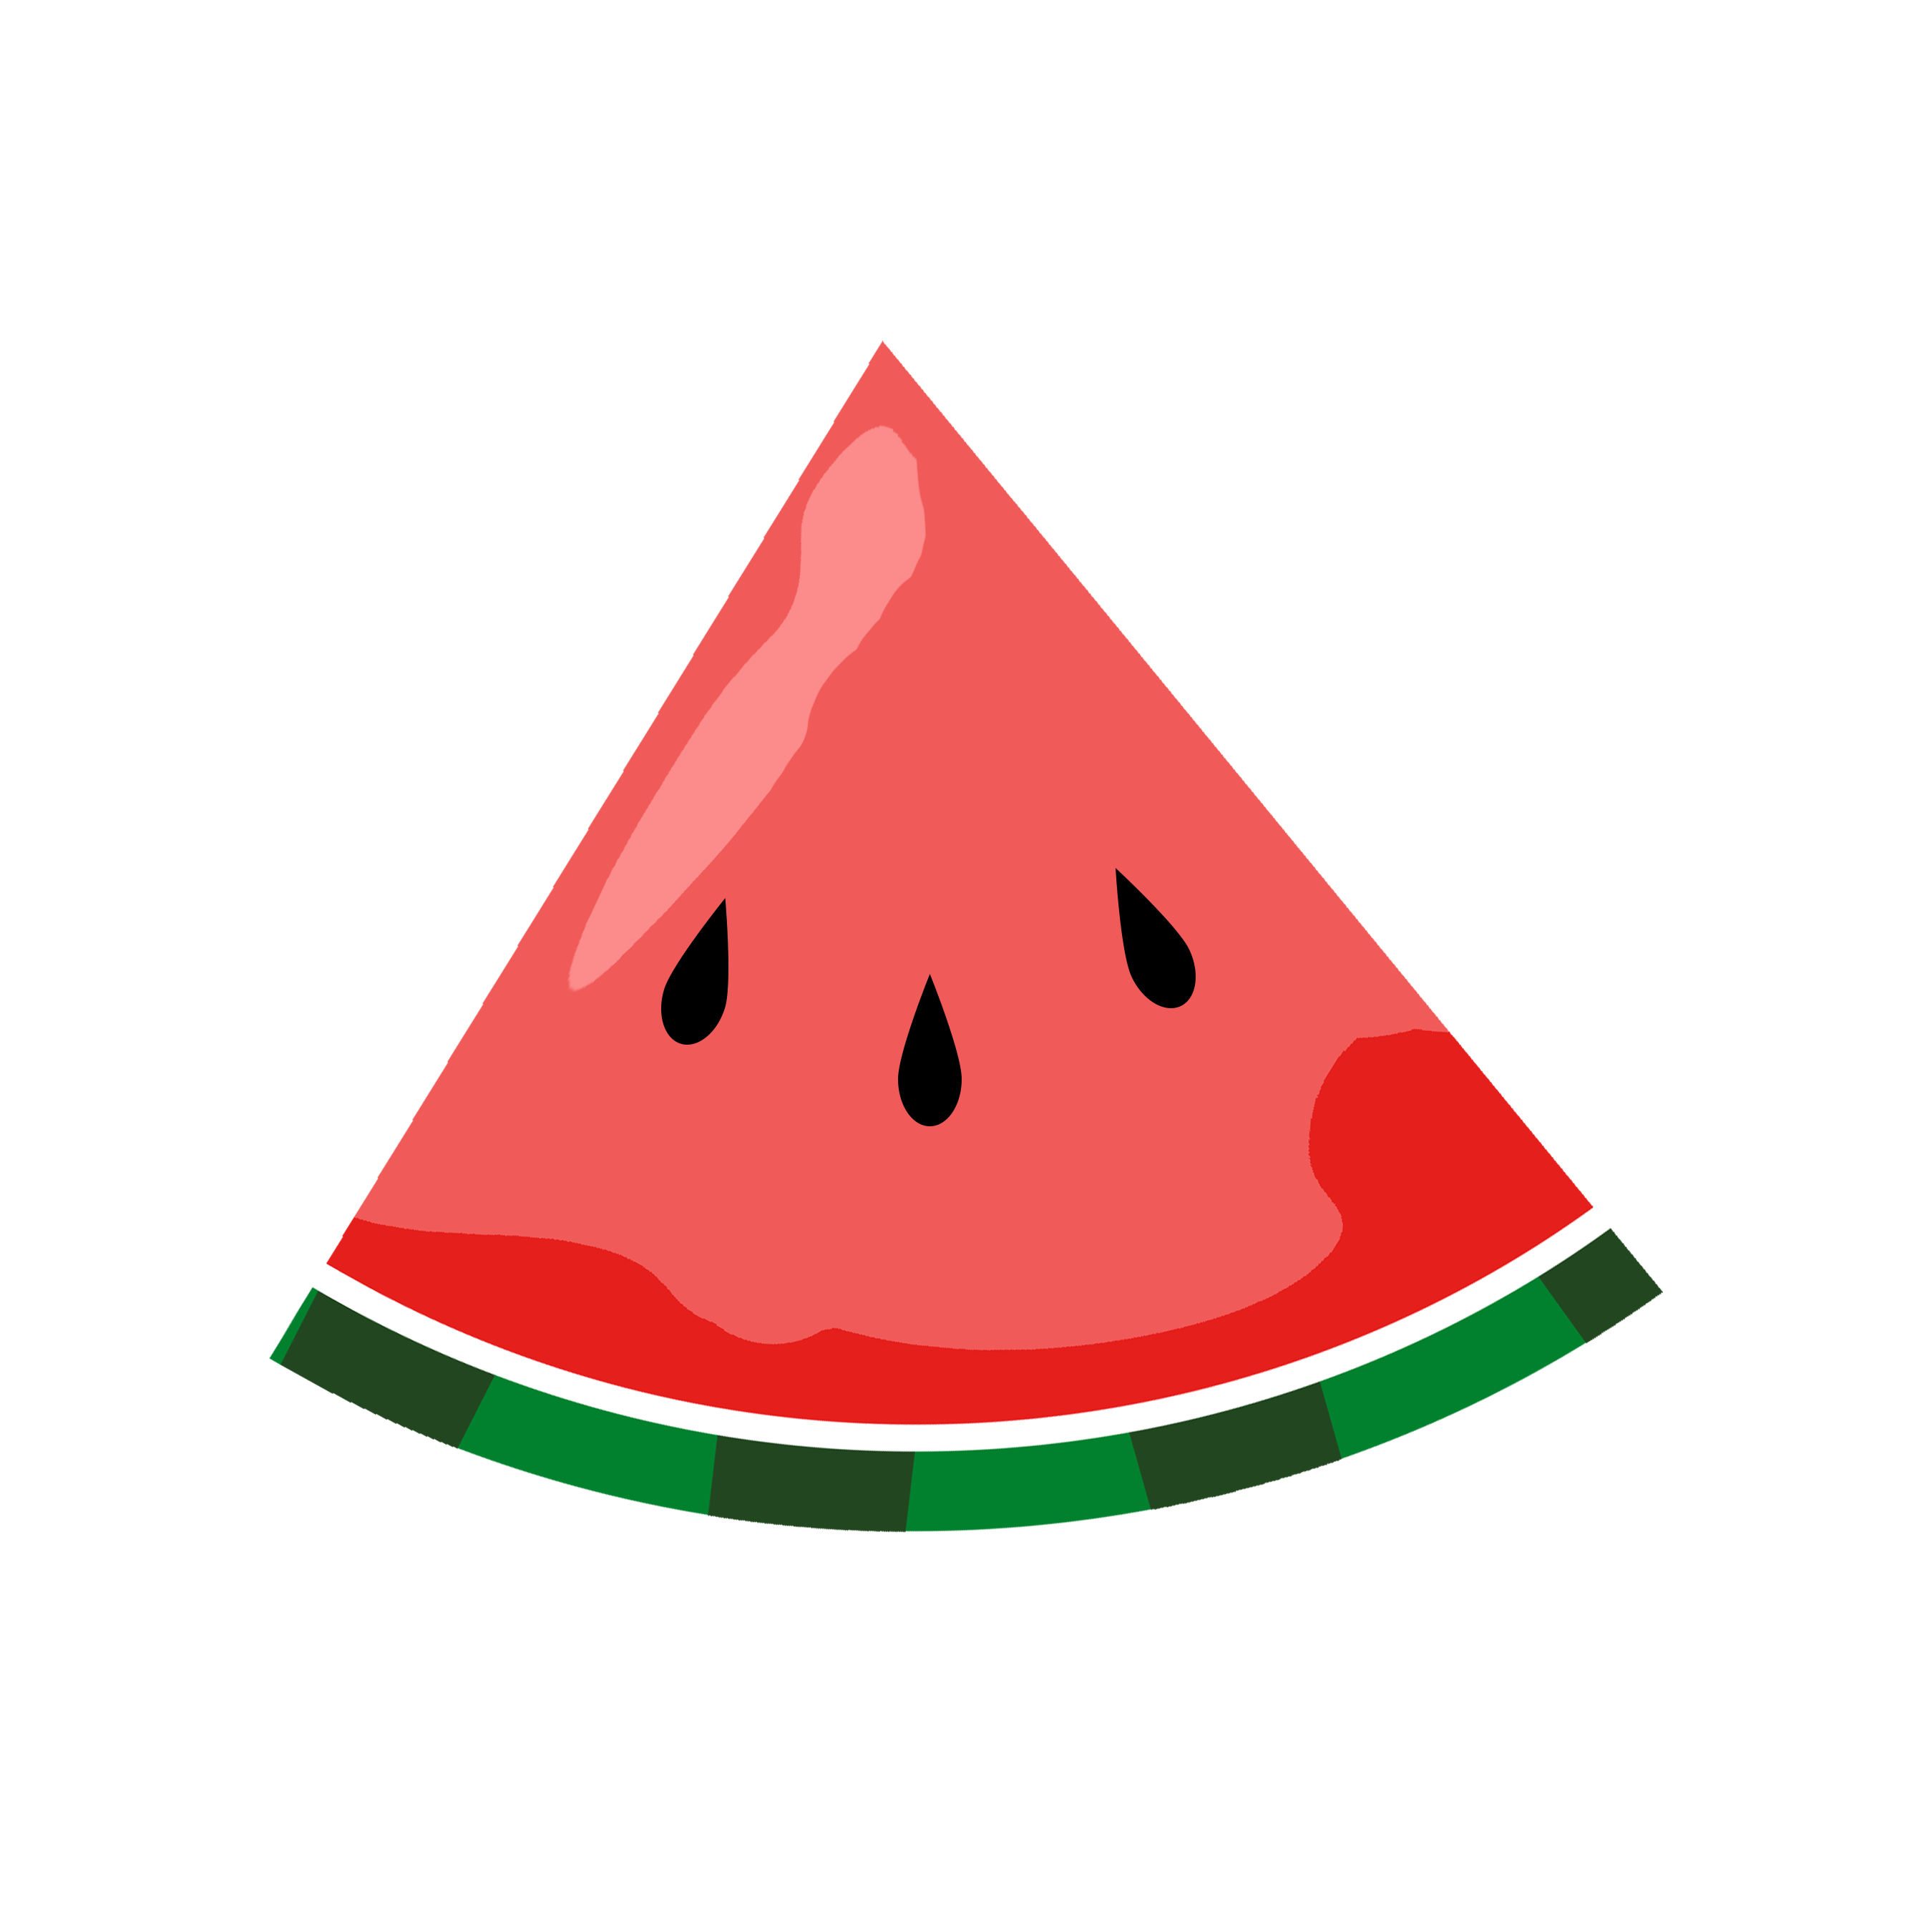 2700x2700 Animated Watermelon Clipart (47+)